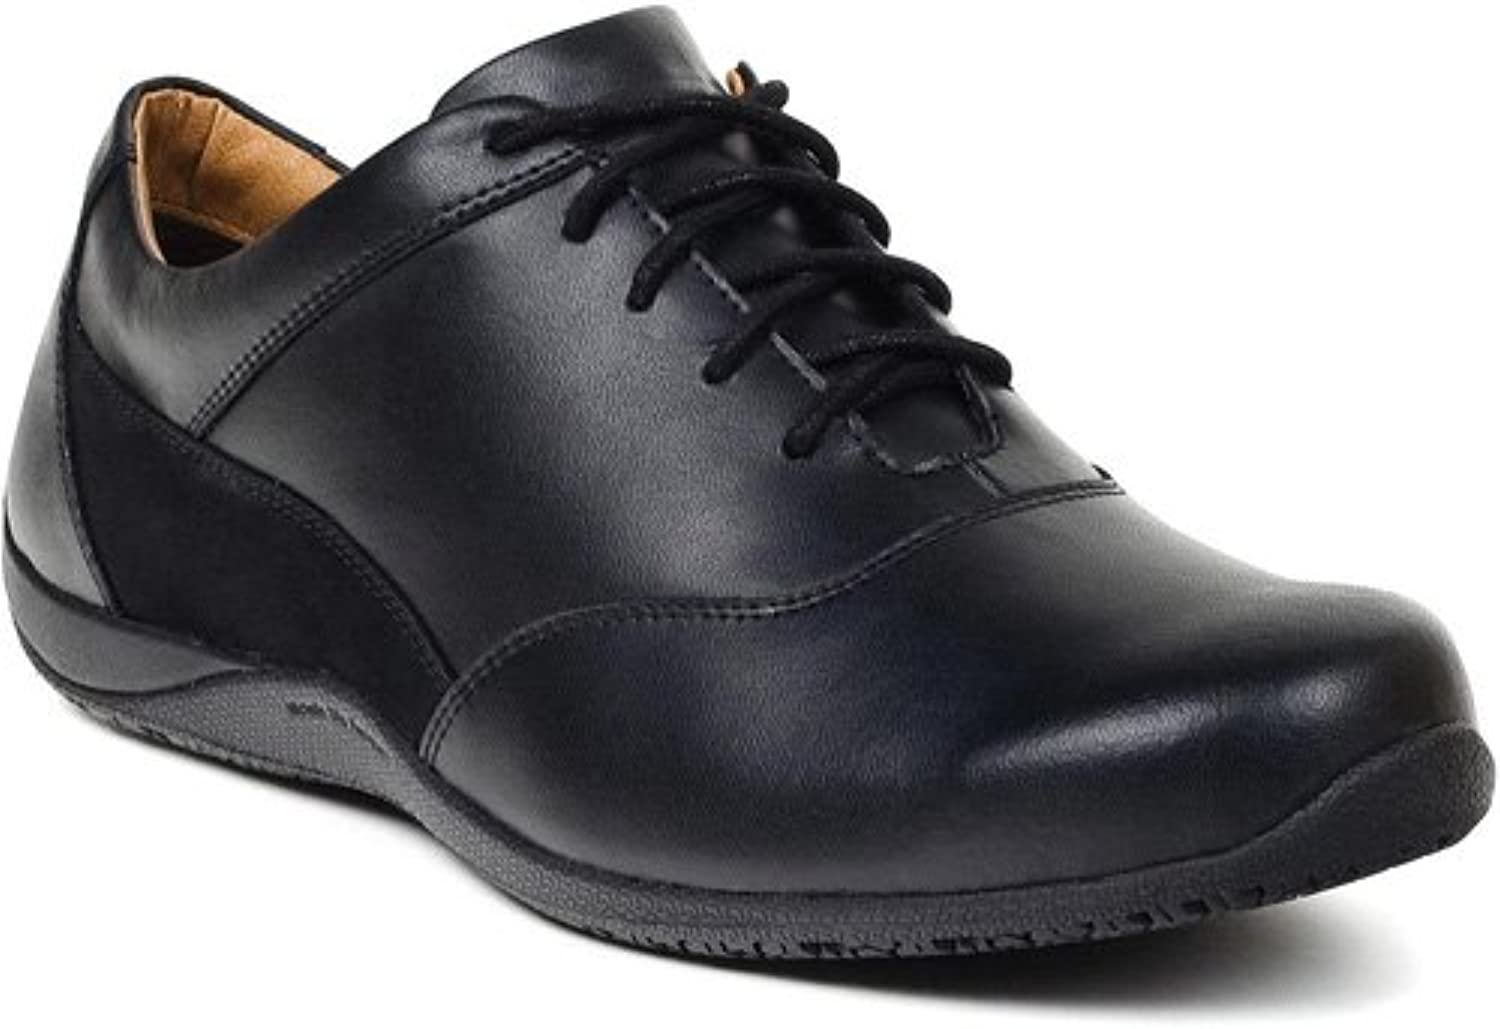 Michelin Women's Manager Oxford shoes